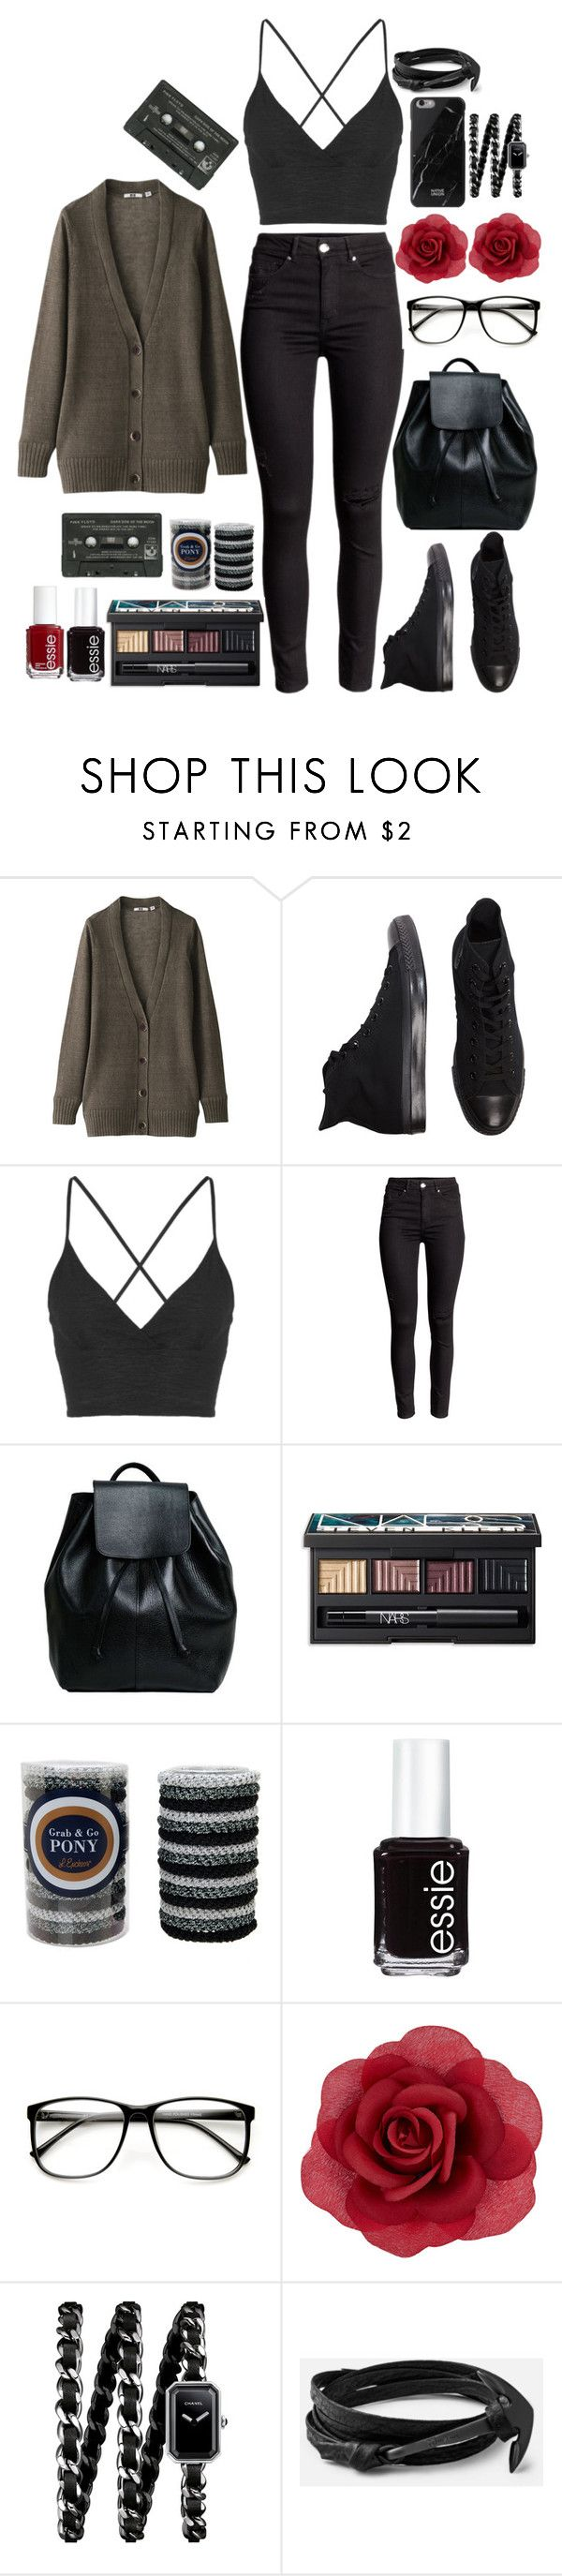 """Soft Grunge Fashion"" by castle-of-ghosts ❤ liked on Polyvore featuring Uniqlo, Converse, Topshop, NARS Cosmetics, L. Erickson, Essie, ZeroUV, Accessorize, Chanel and Hipster"